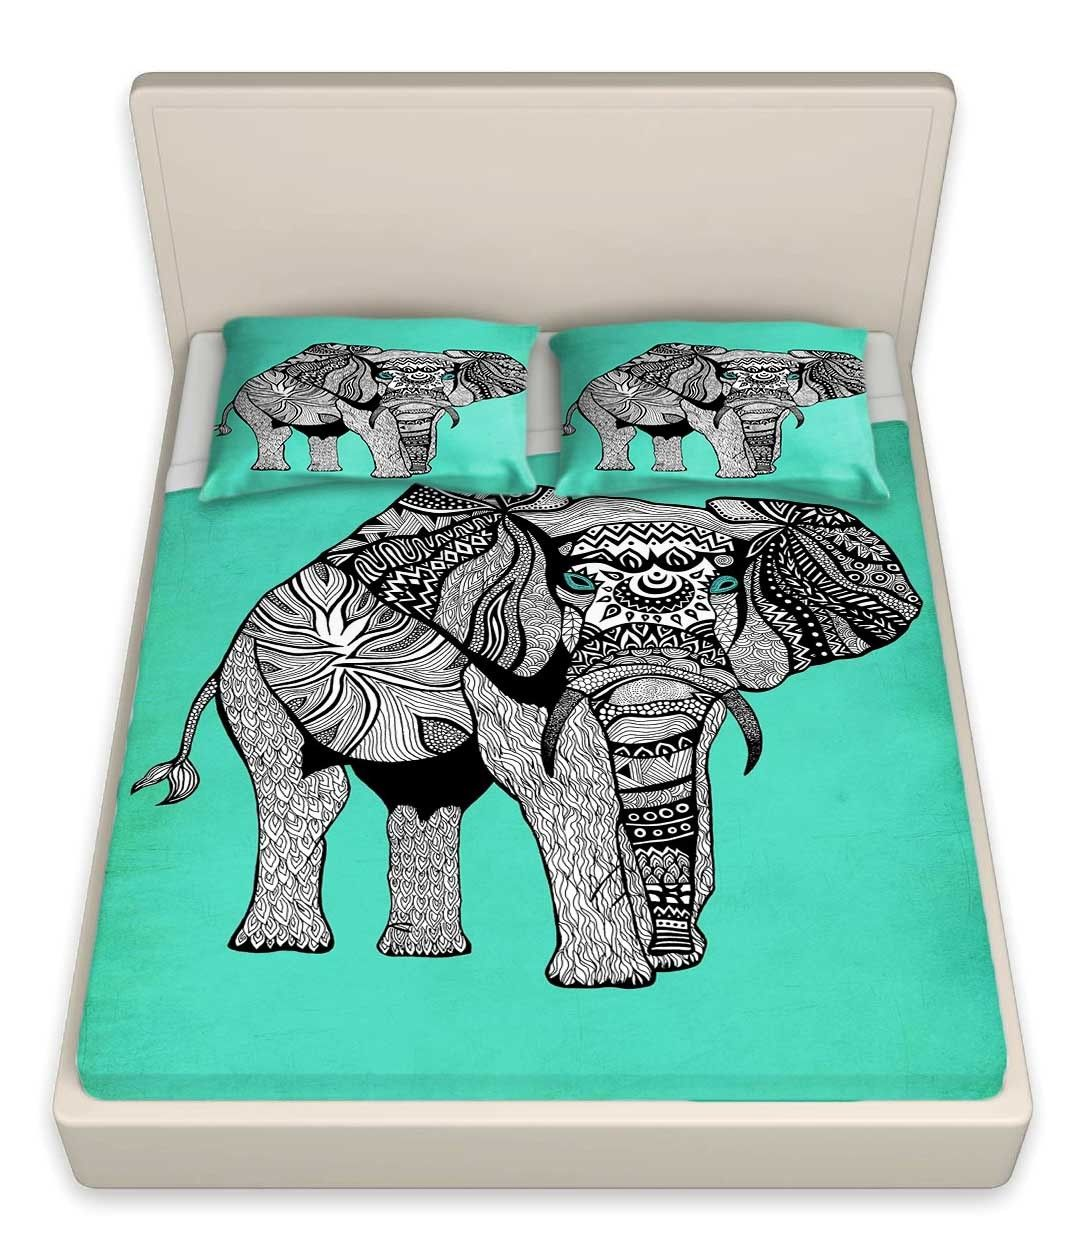 Elephant of Namibia bedding by Pom Graphic Design